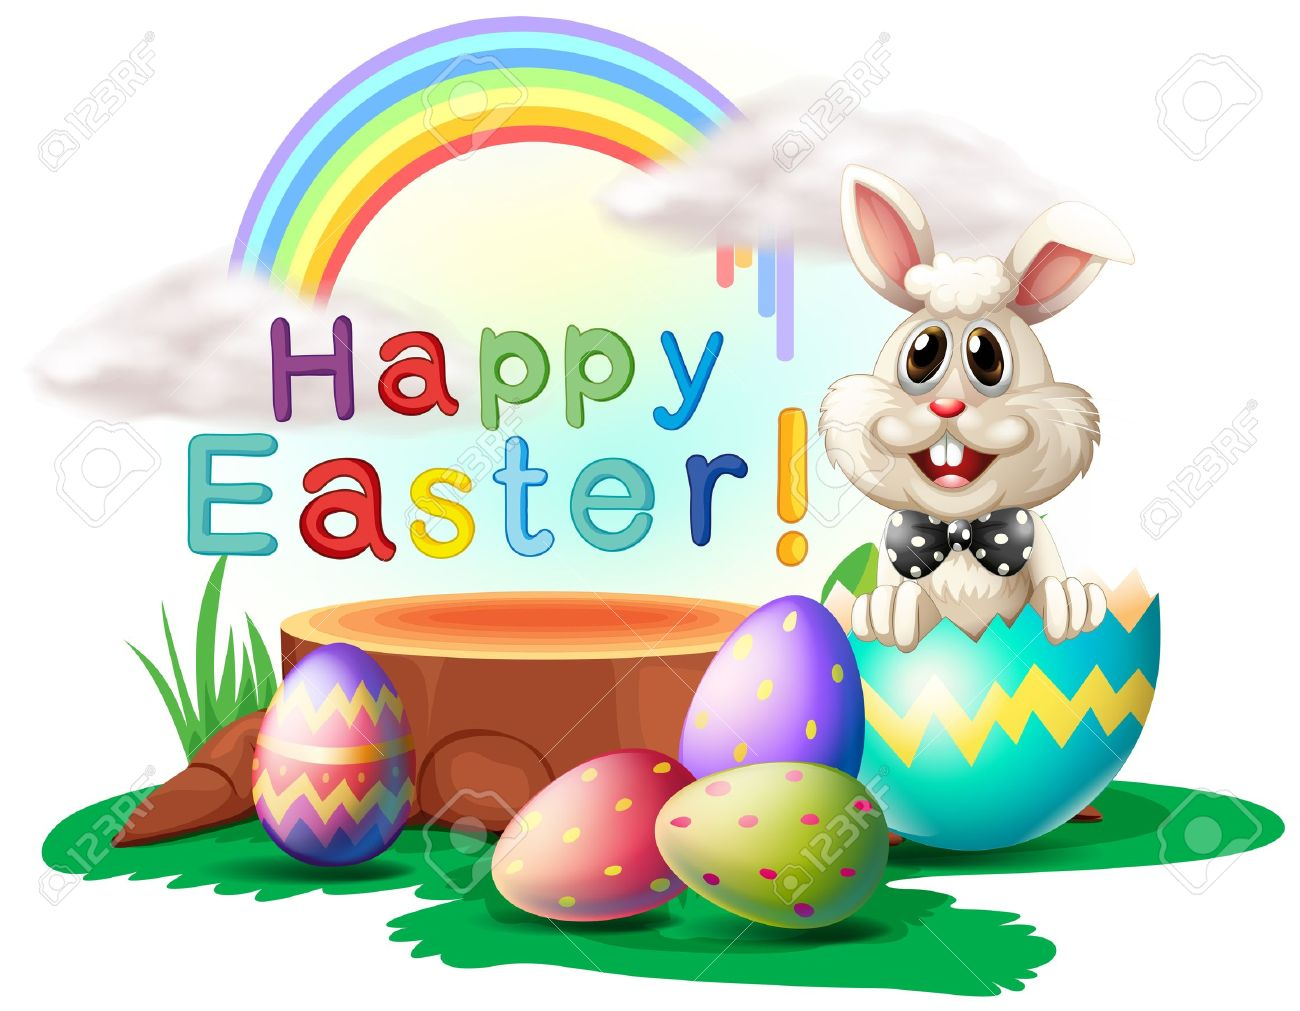 Easter wishes clipart 20 free Cliparts | Download images ...